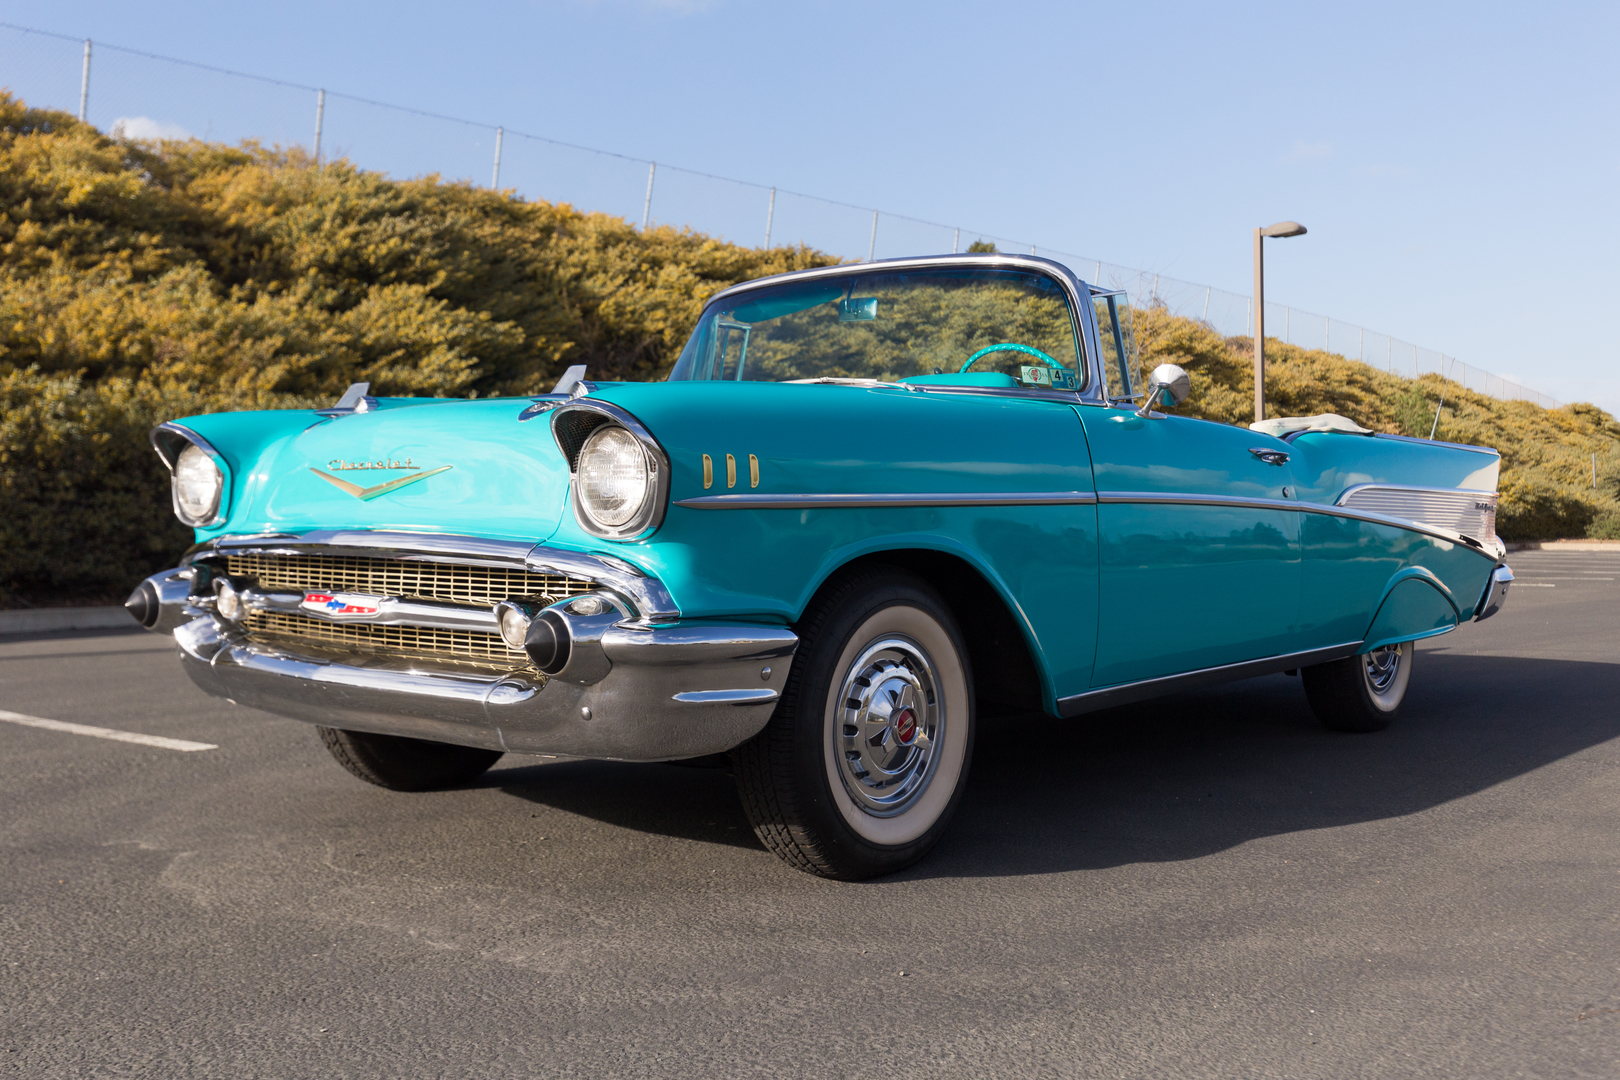 Chevrolet Vehicles Specialty Sales Classics 1957 Chevy Vin Tag Decoder Bel Air No Trim Field 2 Door Convertible For Sale